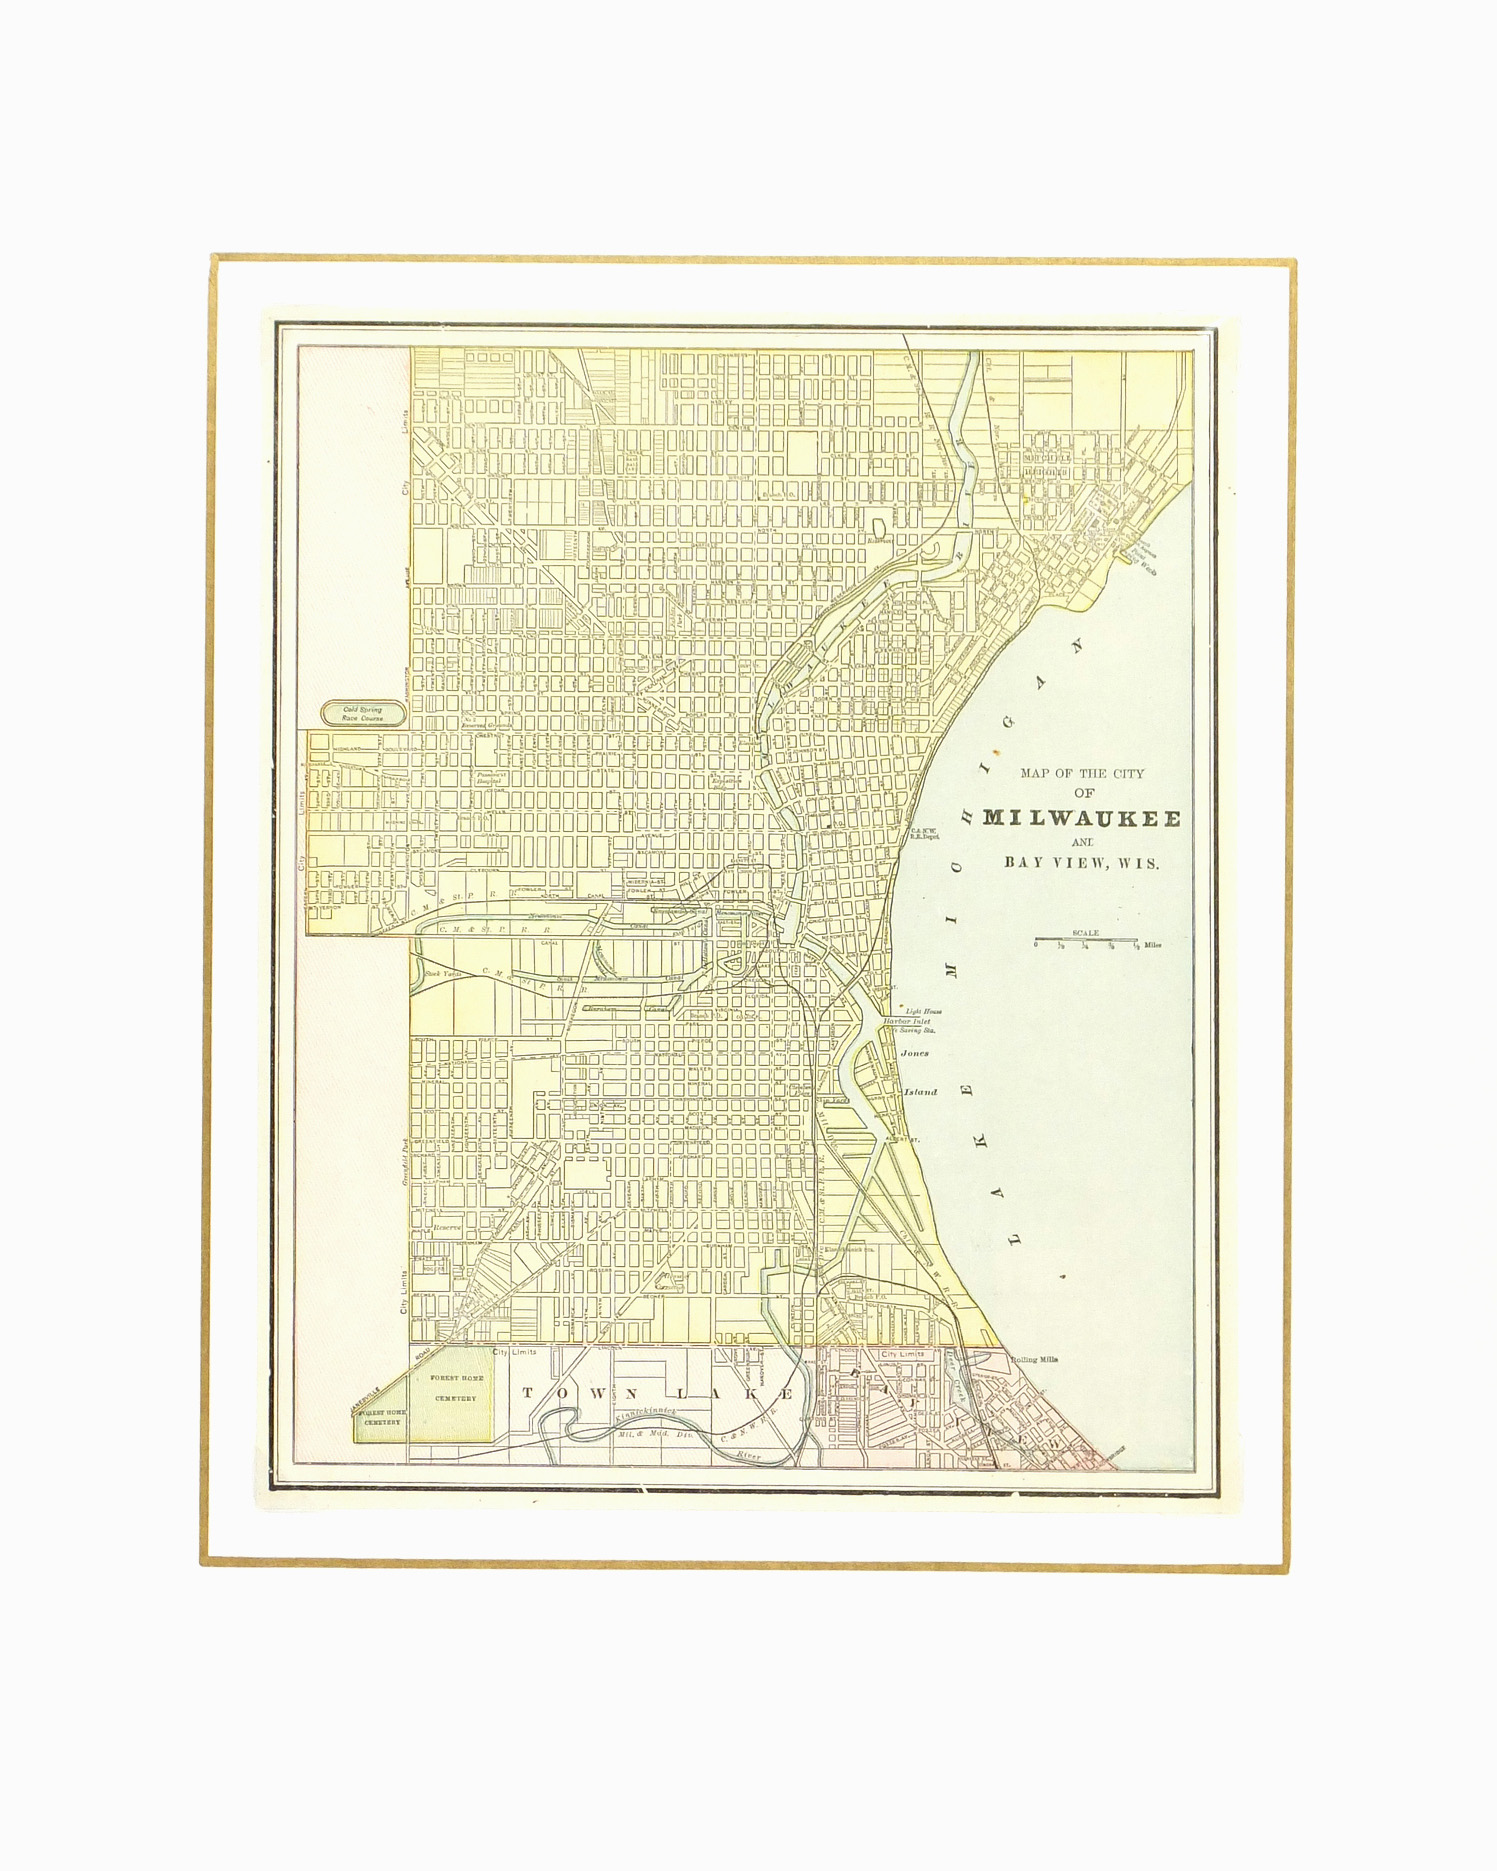 Milwaukee Map,1889-matted-7648K